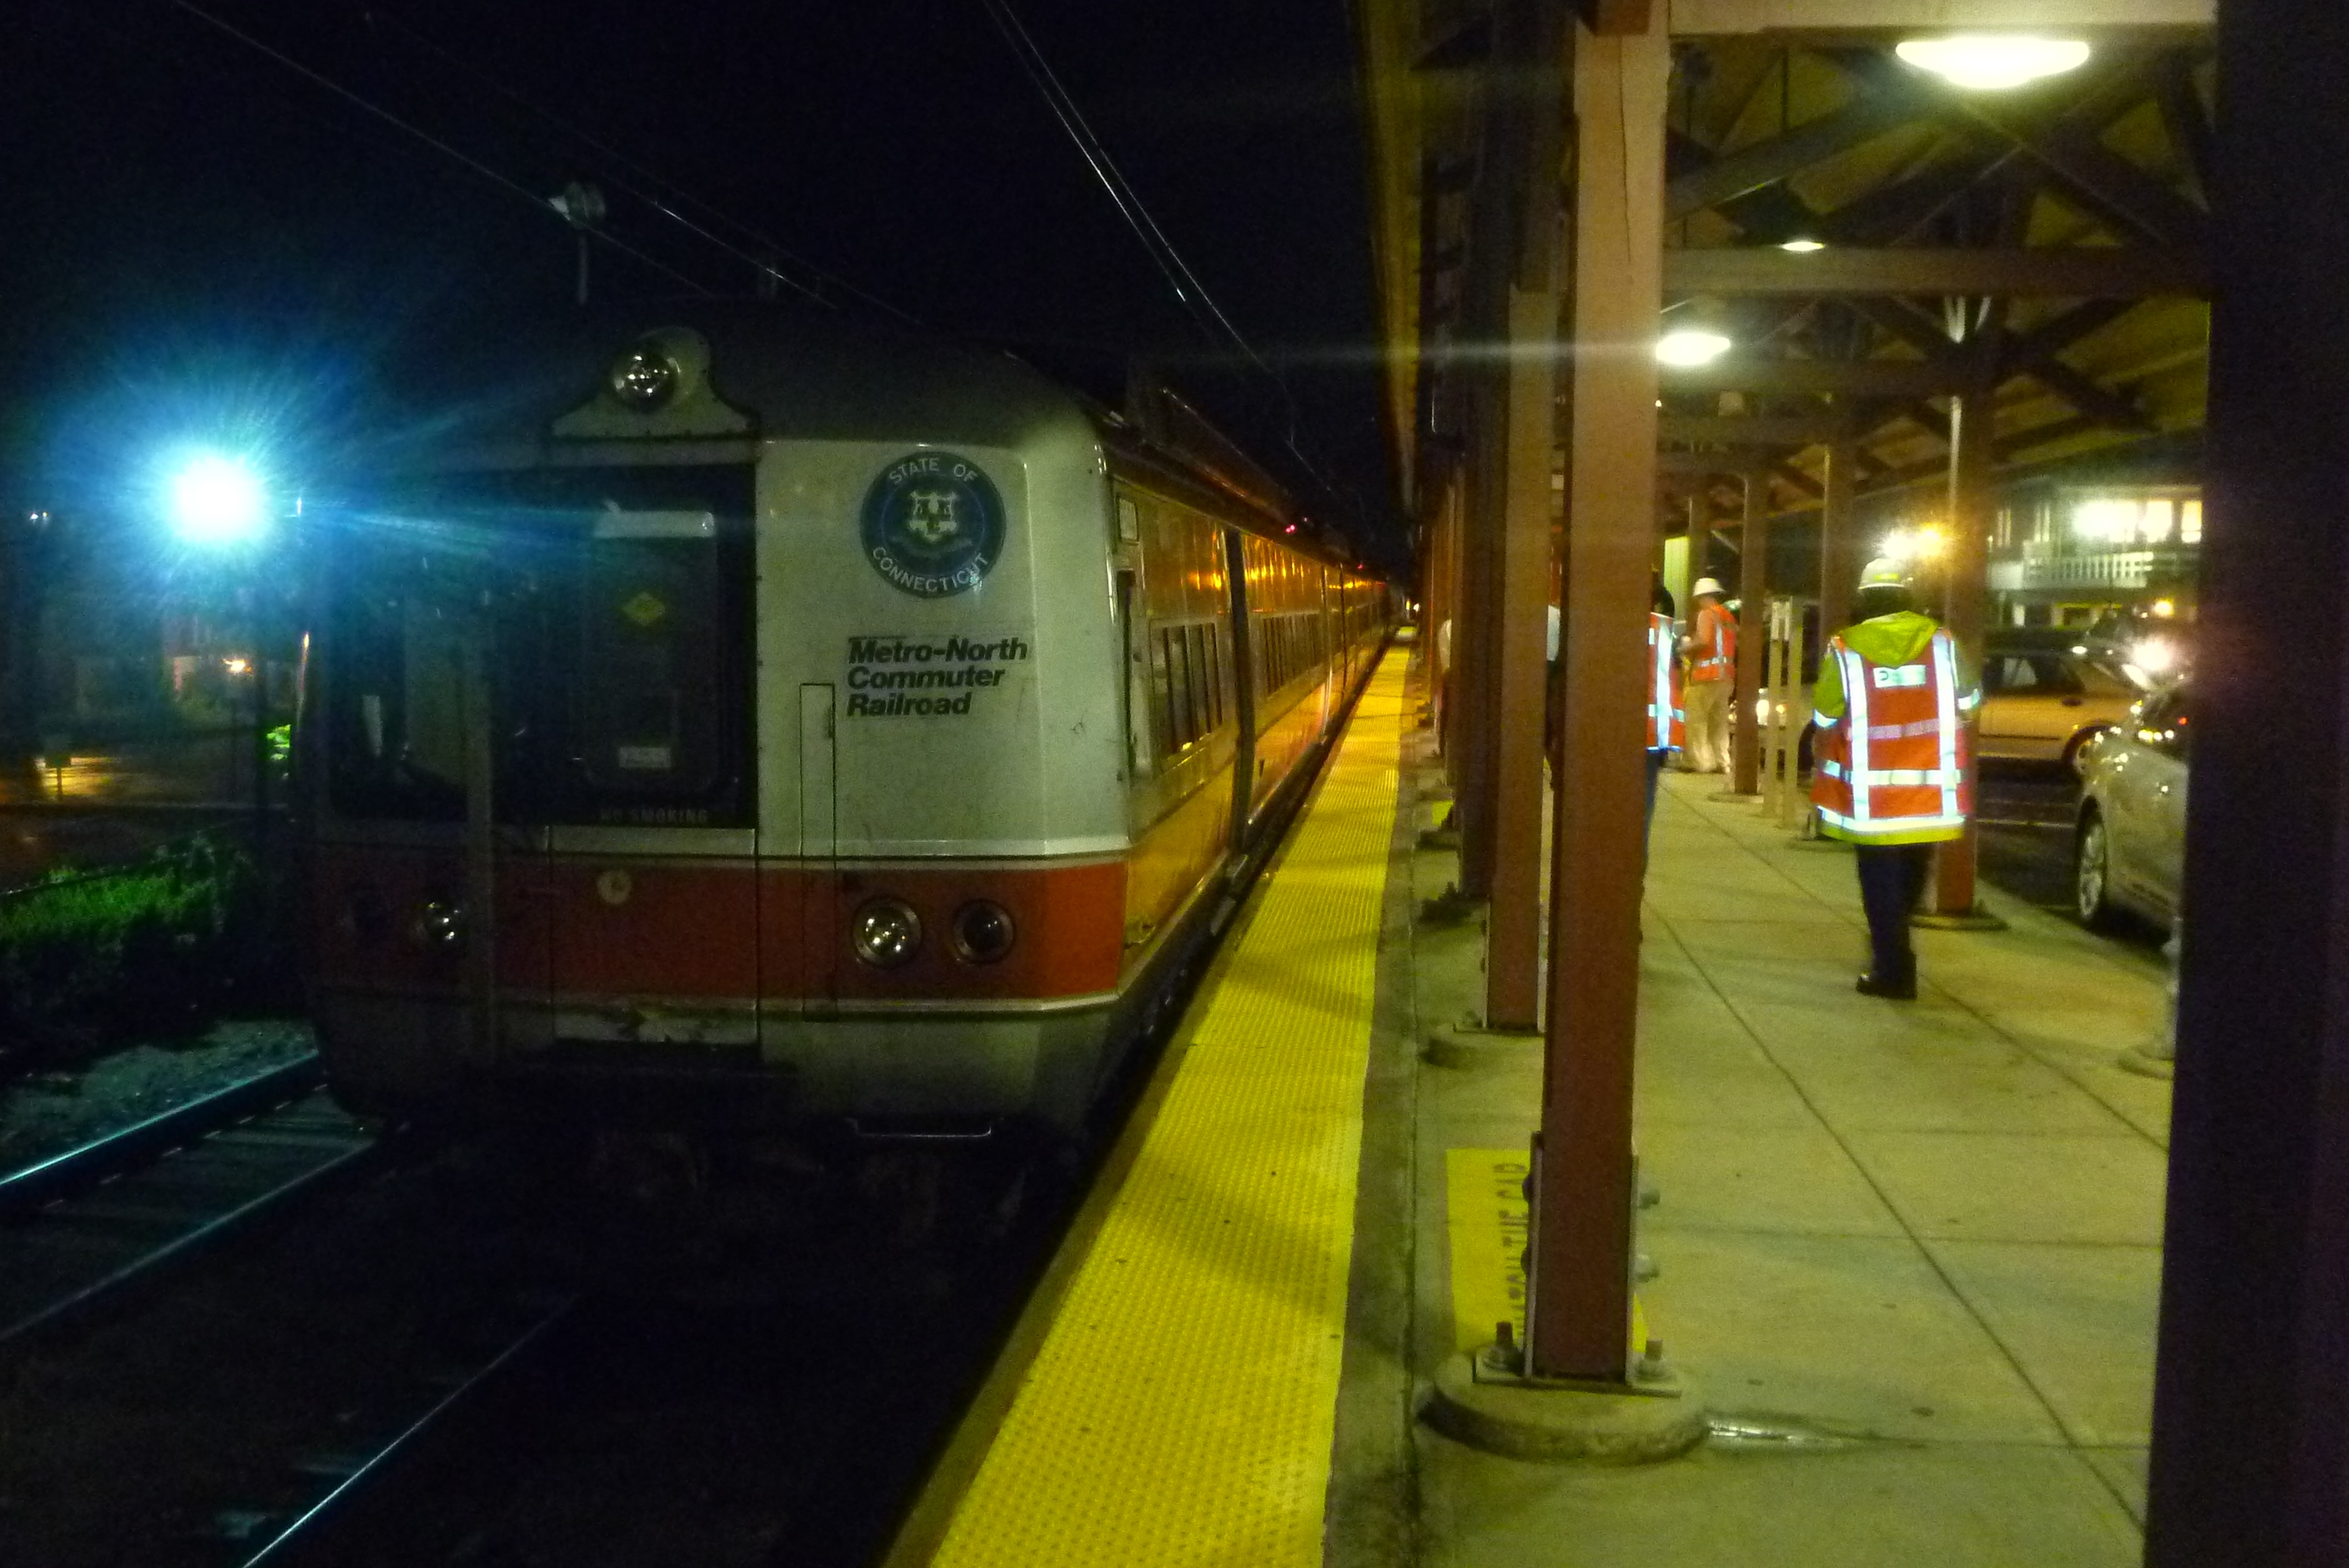 The MTA is close to suspending Metro-North service in advance of Hurricane Sandy. A final decision will be made Sunday.